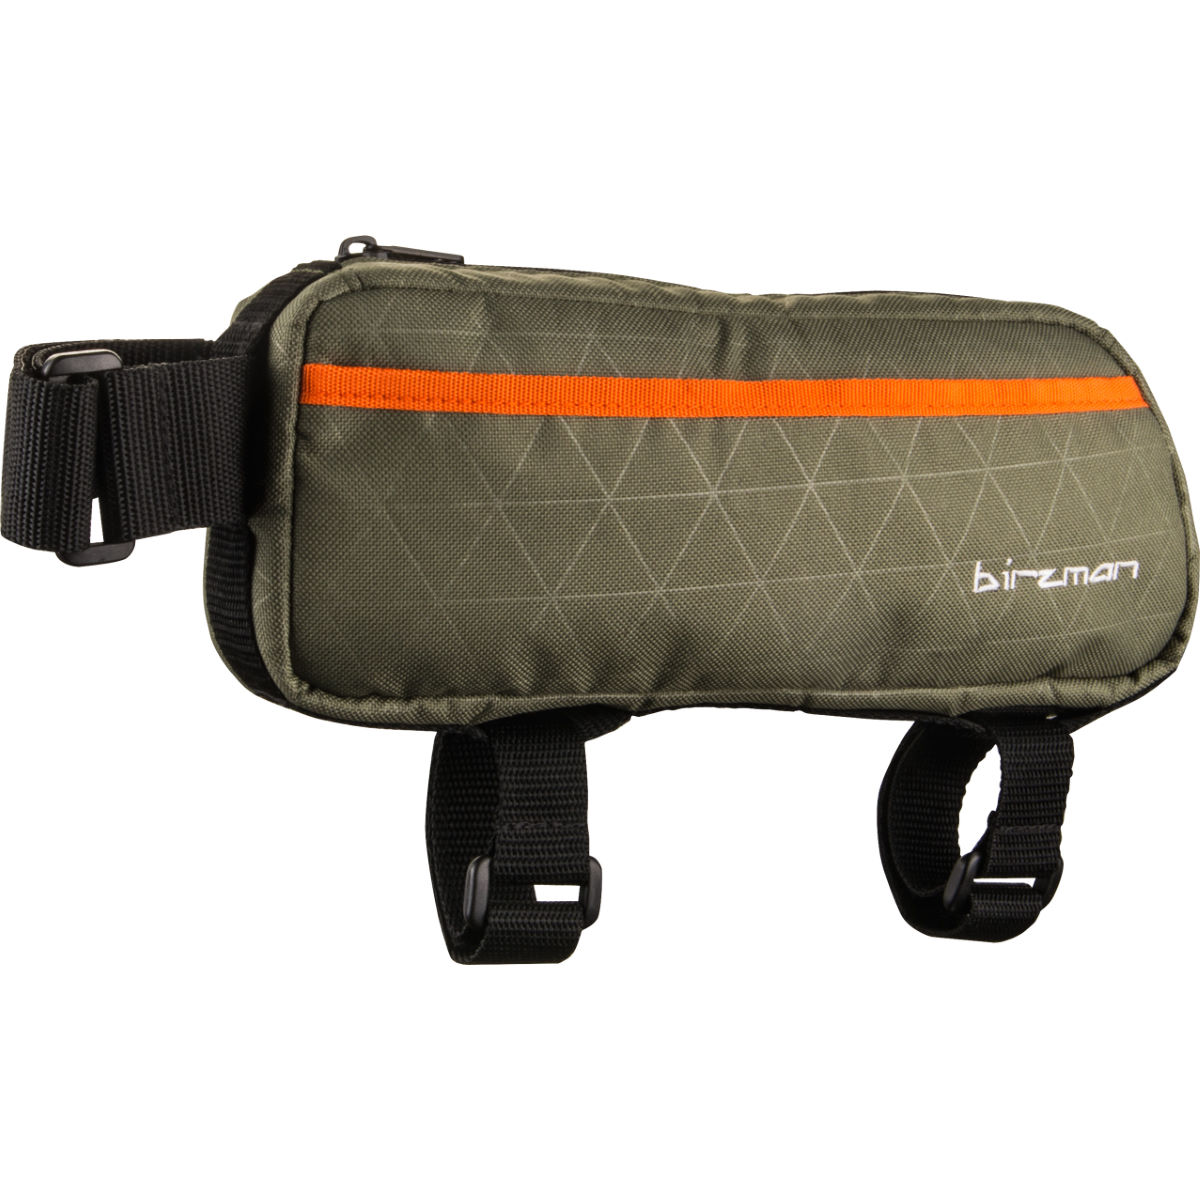 Birzman Packman Travel Top Tube Pack - Bolsas de cuadro